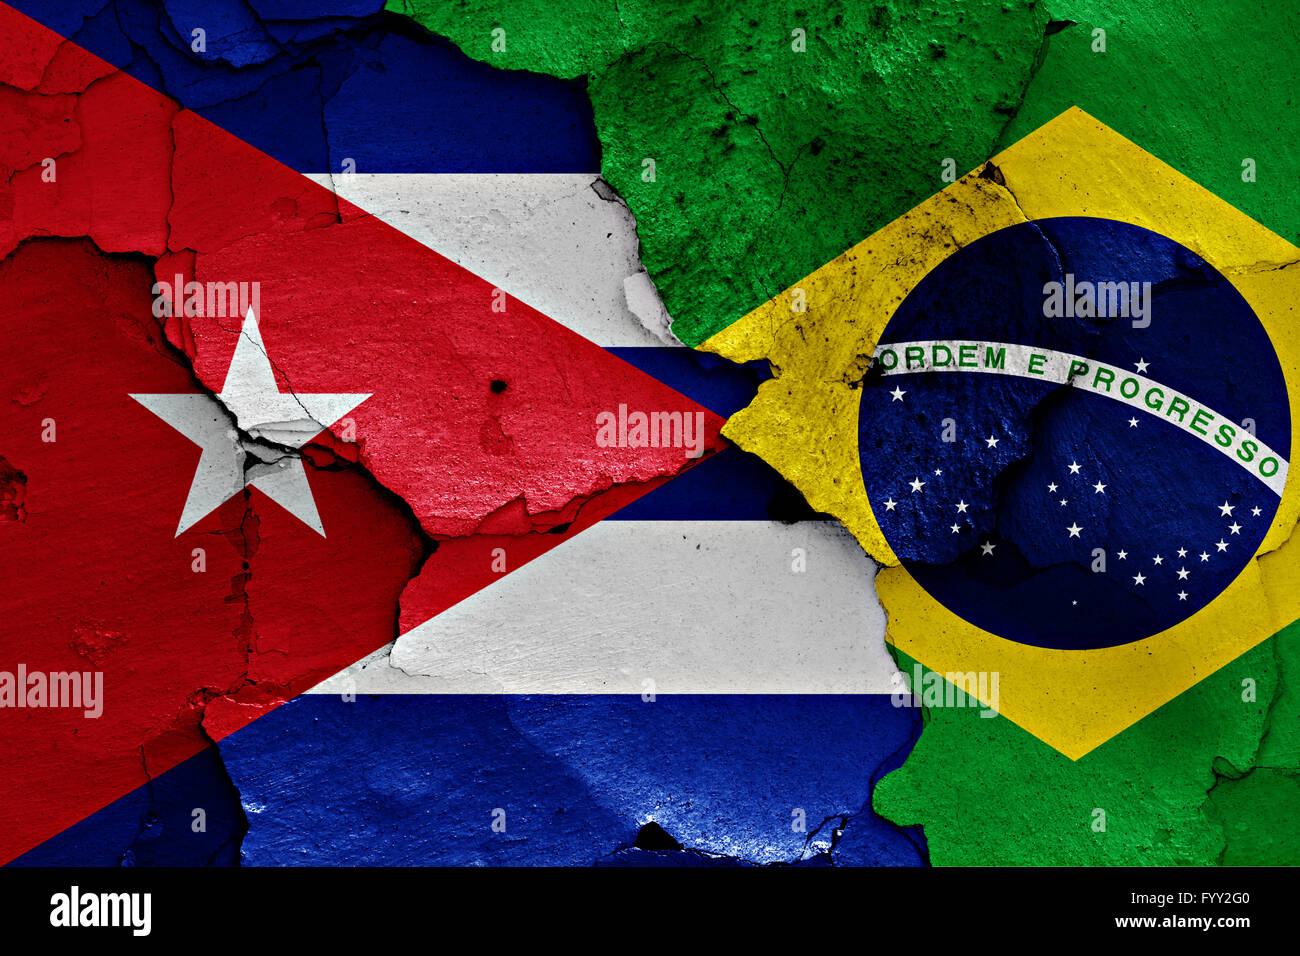 flags of Cuba and Brazil painted on cracked wall - Stock Image